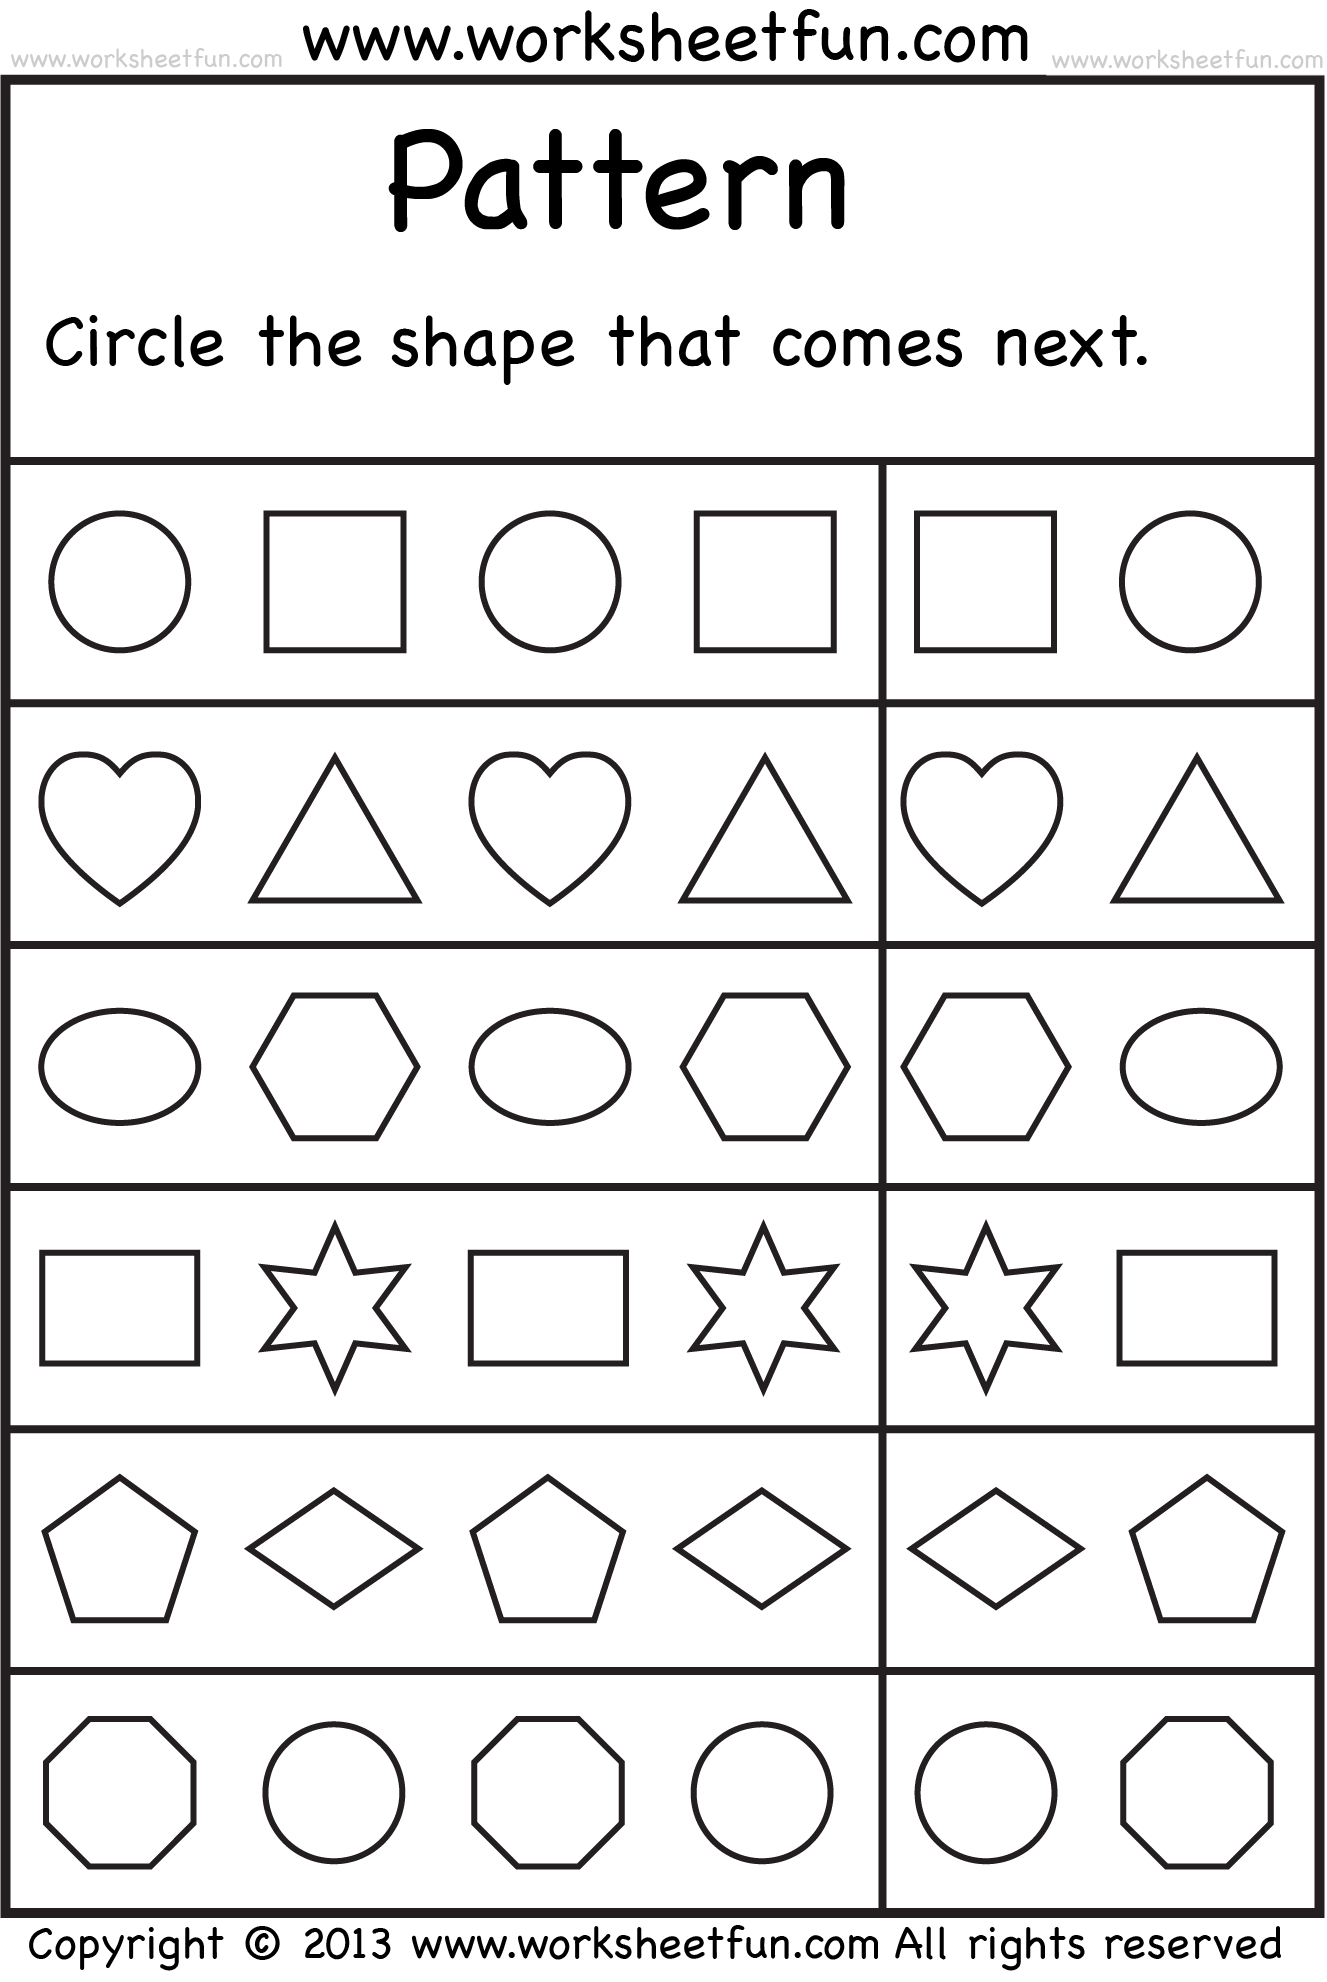 Weirdmailus  Unusual  Images About School Worksheets On Pinterest  Number Words  With Marvelous  Images About School Worksheets On Pinterest  Number Words Alphabet Worksheets And Free Printable Kindergarten Worksheets With Adorable Definite And Indefinite Articles English Worksheets Also Map Skills Worksheets For Nd Grade In Addition Nth Term Worksheet And Free Maths Worksheets Ks As Well As Worksheets For The Letter E Additionally Fafsa Web Worksheet From Pinterestcom With Weirdmailus  Marvelous  Images About School Worksheets On Pinterest  Number Words  With Adorable  Images About School Worksheets On Pinterest  Number Words Alphabet Worksheets And Free Printable Kindergarten Worksheets And Unusual Definite And Indefinite Articles English Worksheets Also Map Skills Worksheets For Nd Grade In Addition Nth Term Worksheet From Pinterestcom